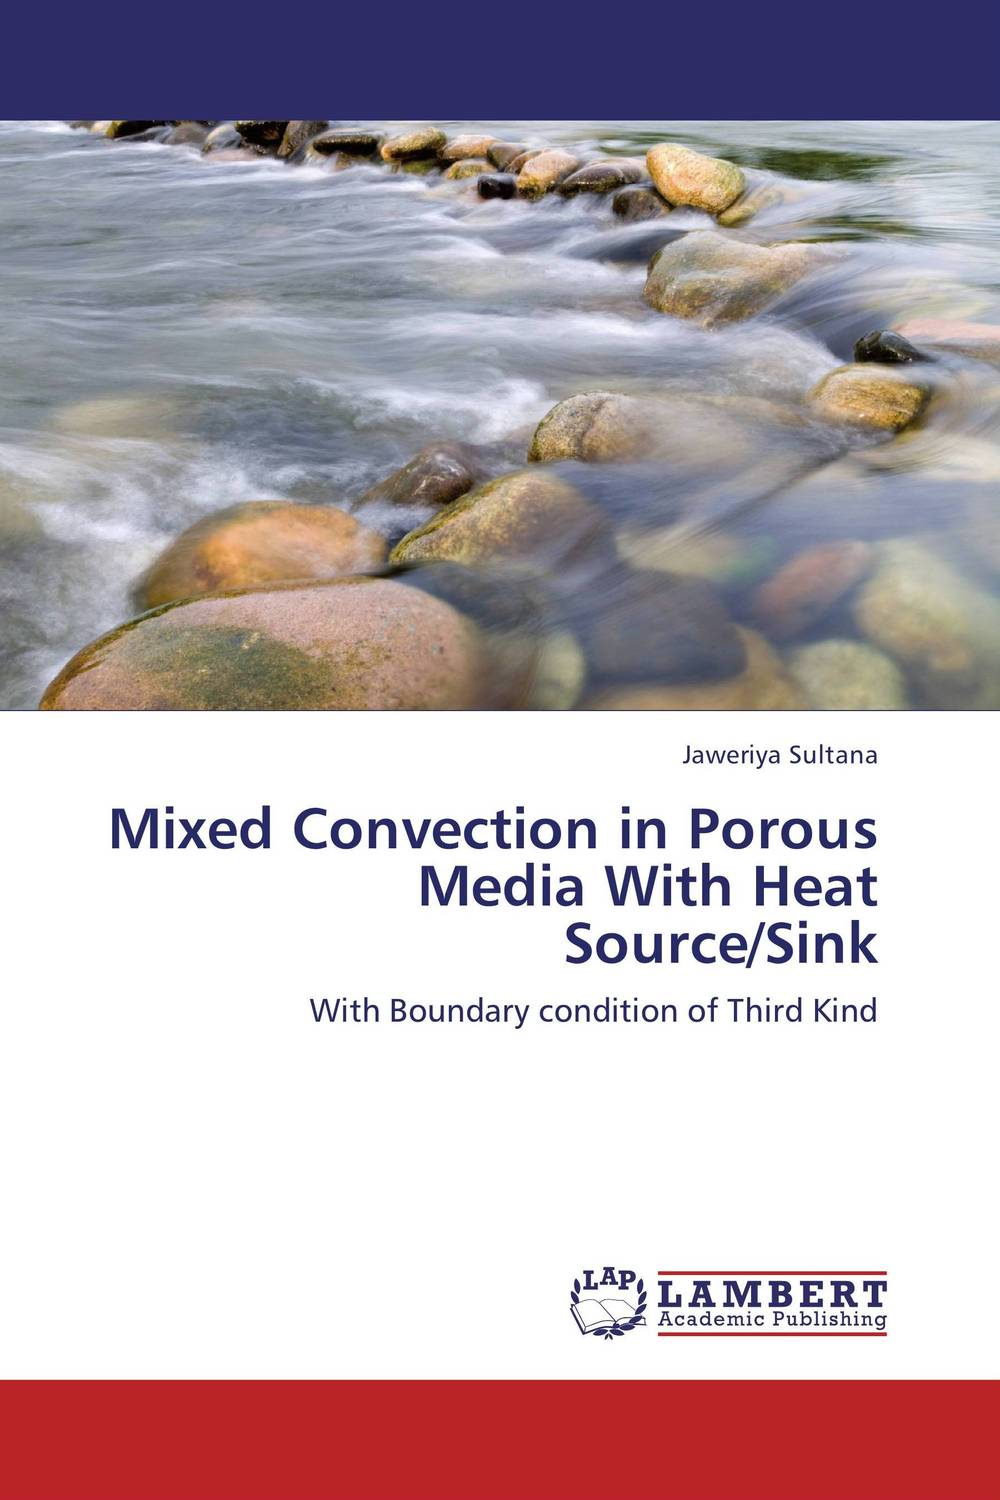 Mixed Convection in Porous Media With Heat Source/Sink particle mixing and settling in reservoirs under natural convection